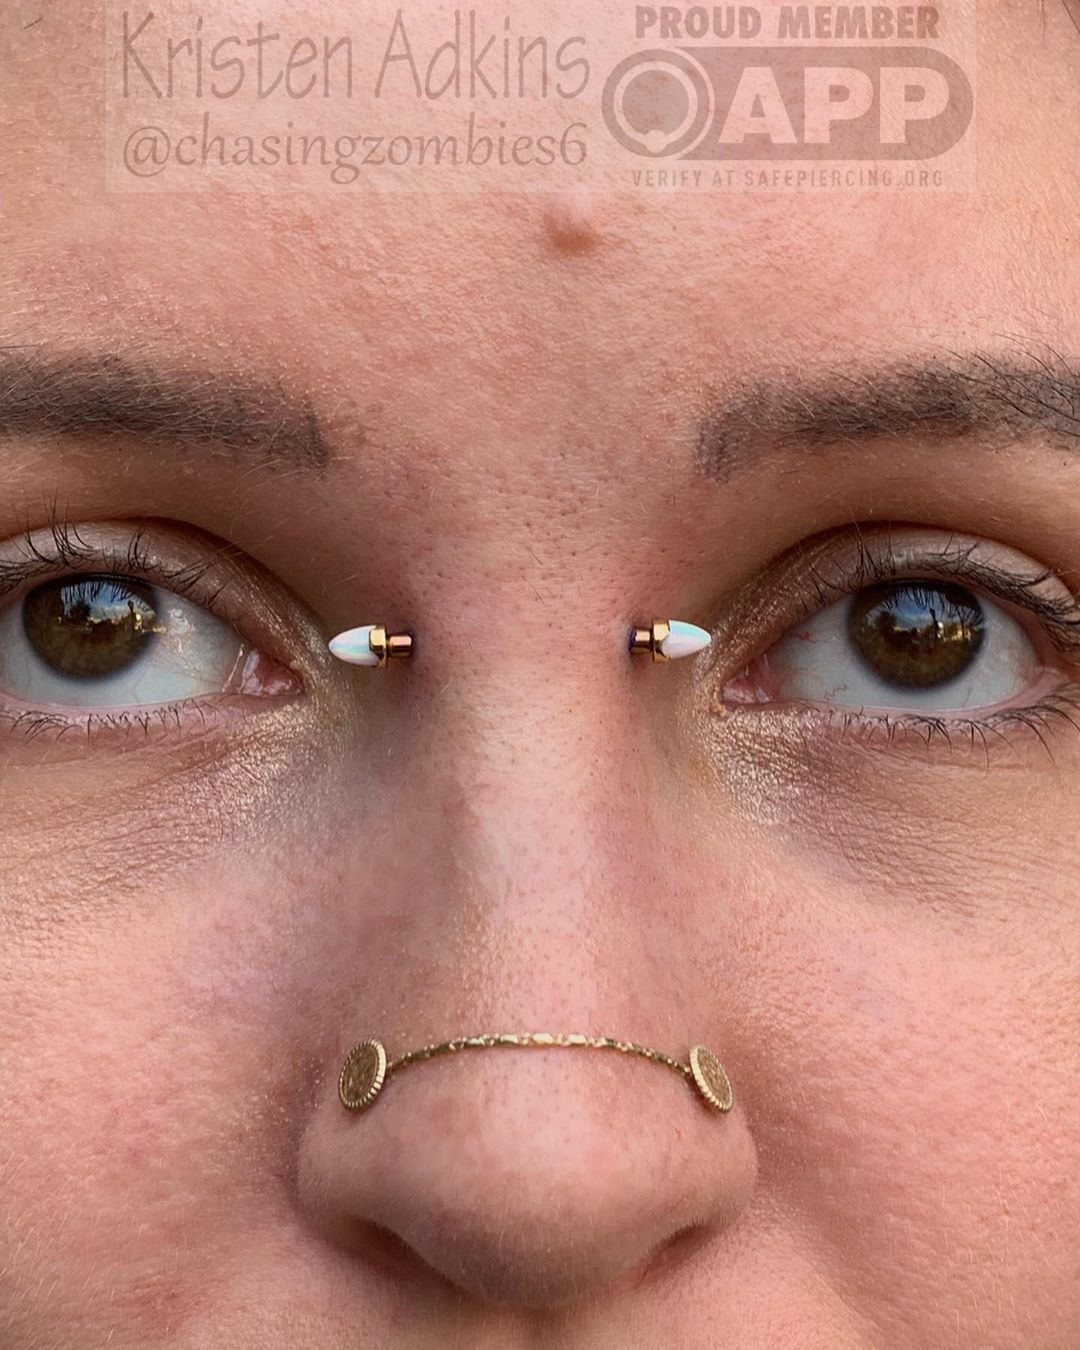 "Kristen Adkins on Instagram: ""12g bridge piercing with 18k rose gold prong set bullet ends from @anatometalinc  Thanks for your trust!  #appmember #safepiercing…"""